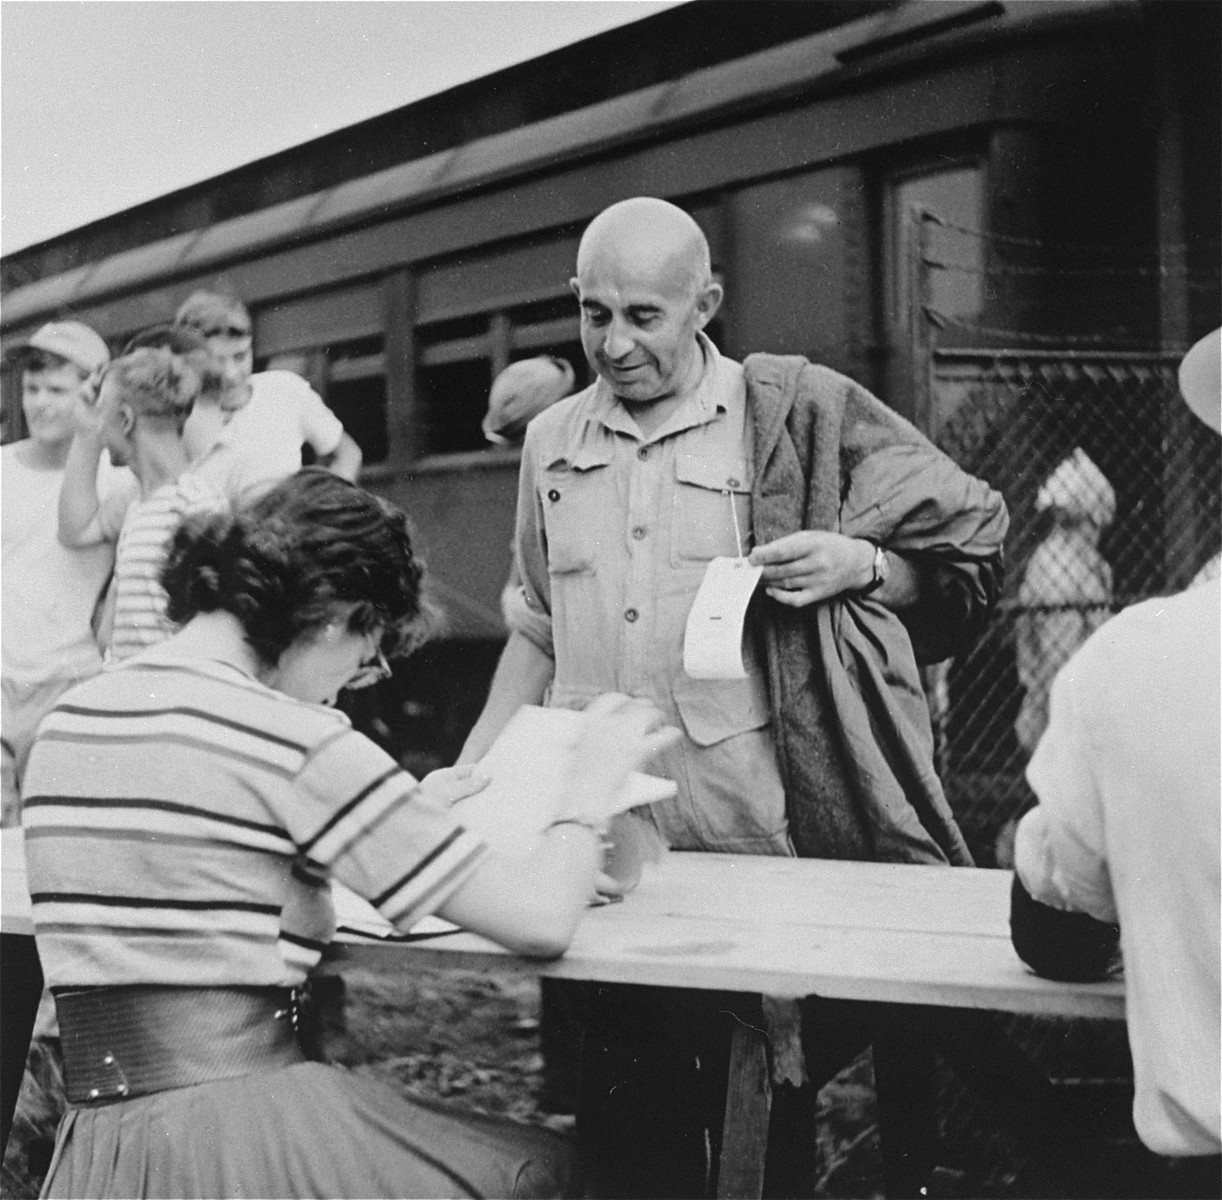 Newly arriving refugees are checked in at the Fort Ontario shelter by representatives of the War Relocation Authority and the U.S. Army.